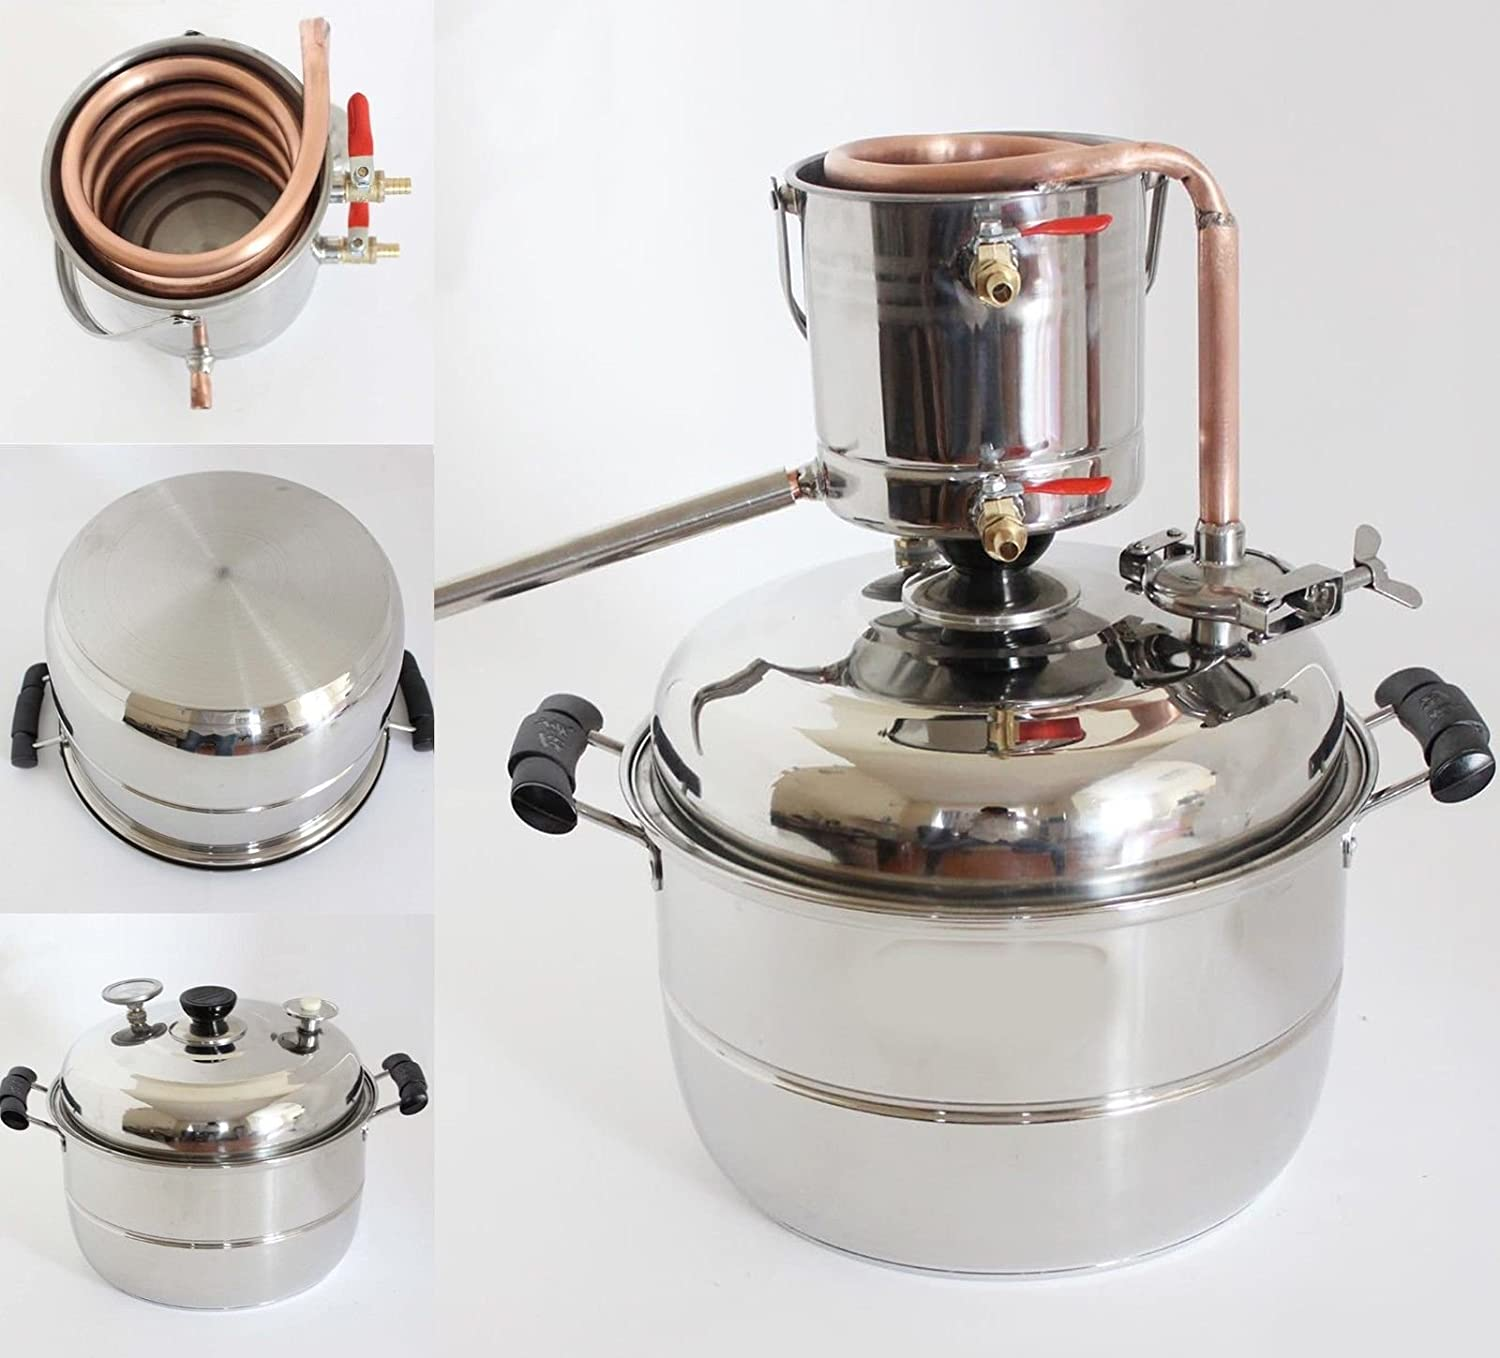 New Stainless/Copper Home 10L Litres Wine Making Moonshine Still Water Alcohol Distiller Brandy Grape Wine Vodka White Spirit Essential Oil Pure Dew Brew Kits With Water Pump Thermometer WMN_TRULYSTEP